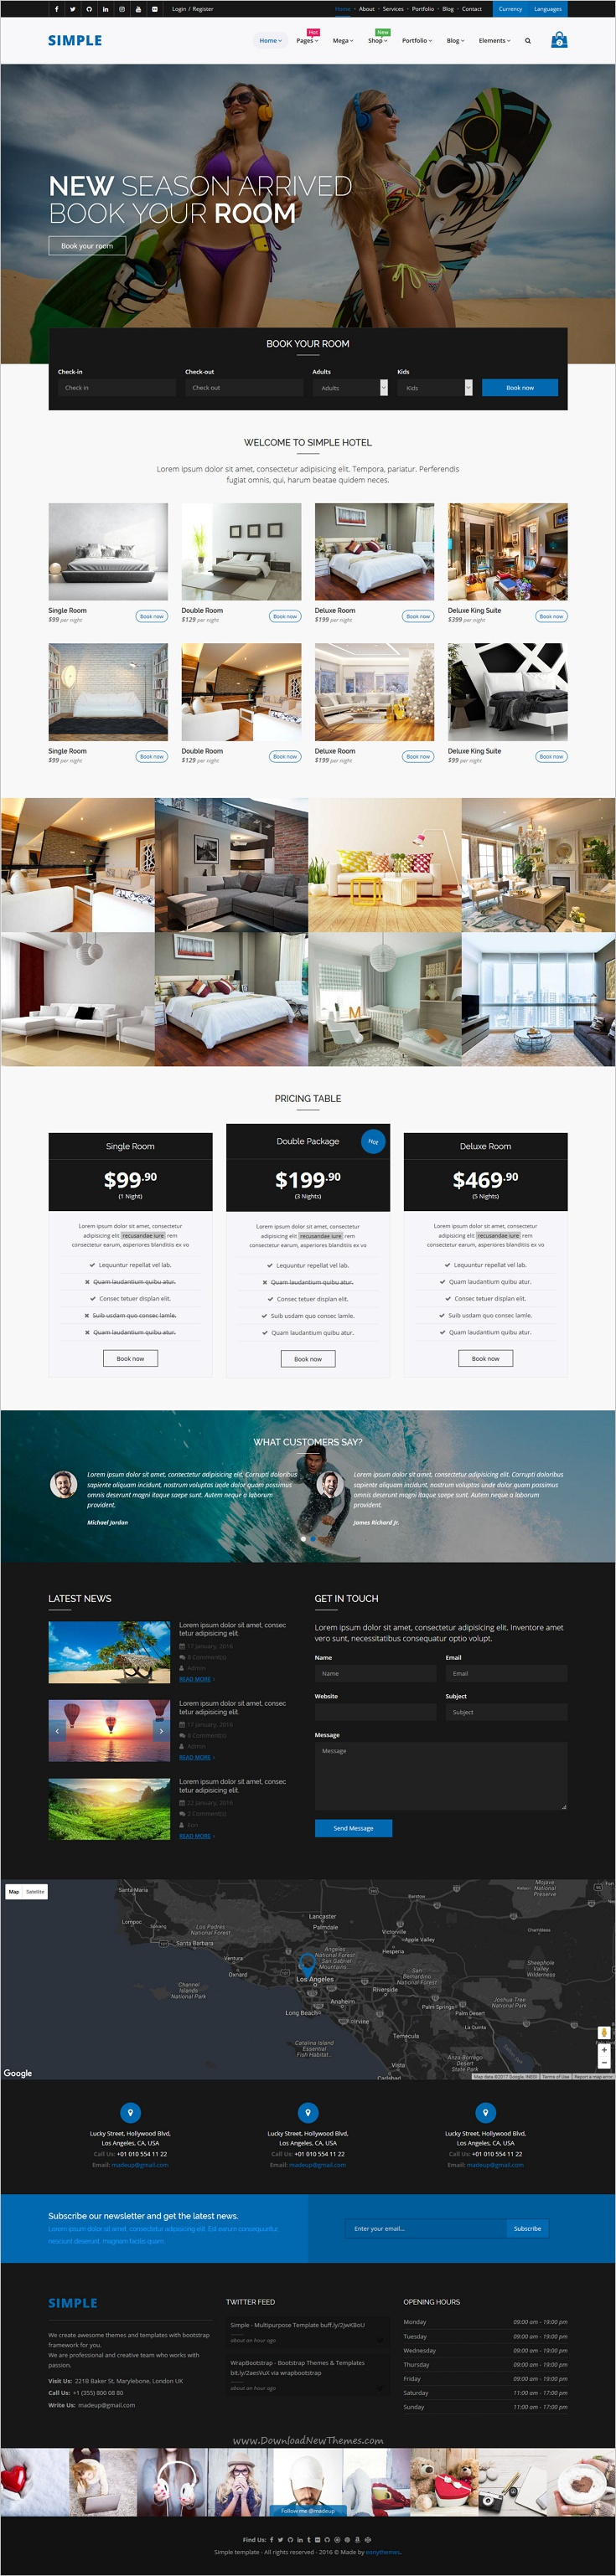 Simple is a creative, multipurpose #bootstrap template for stunning #Hotel #room website with 60+ unique Homepages layouts, 250+ Total HTML pages, Detailed elements pages, 20+ Ready Color Scheme and much more download now➩ https://wrapbootstrap.com/theme/simple-multipurpose-template-WB097M828?ref=datasata